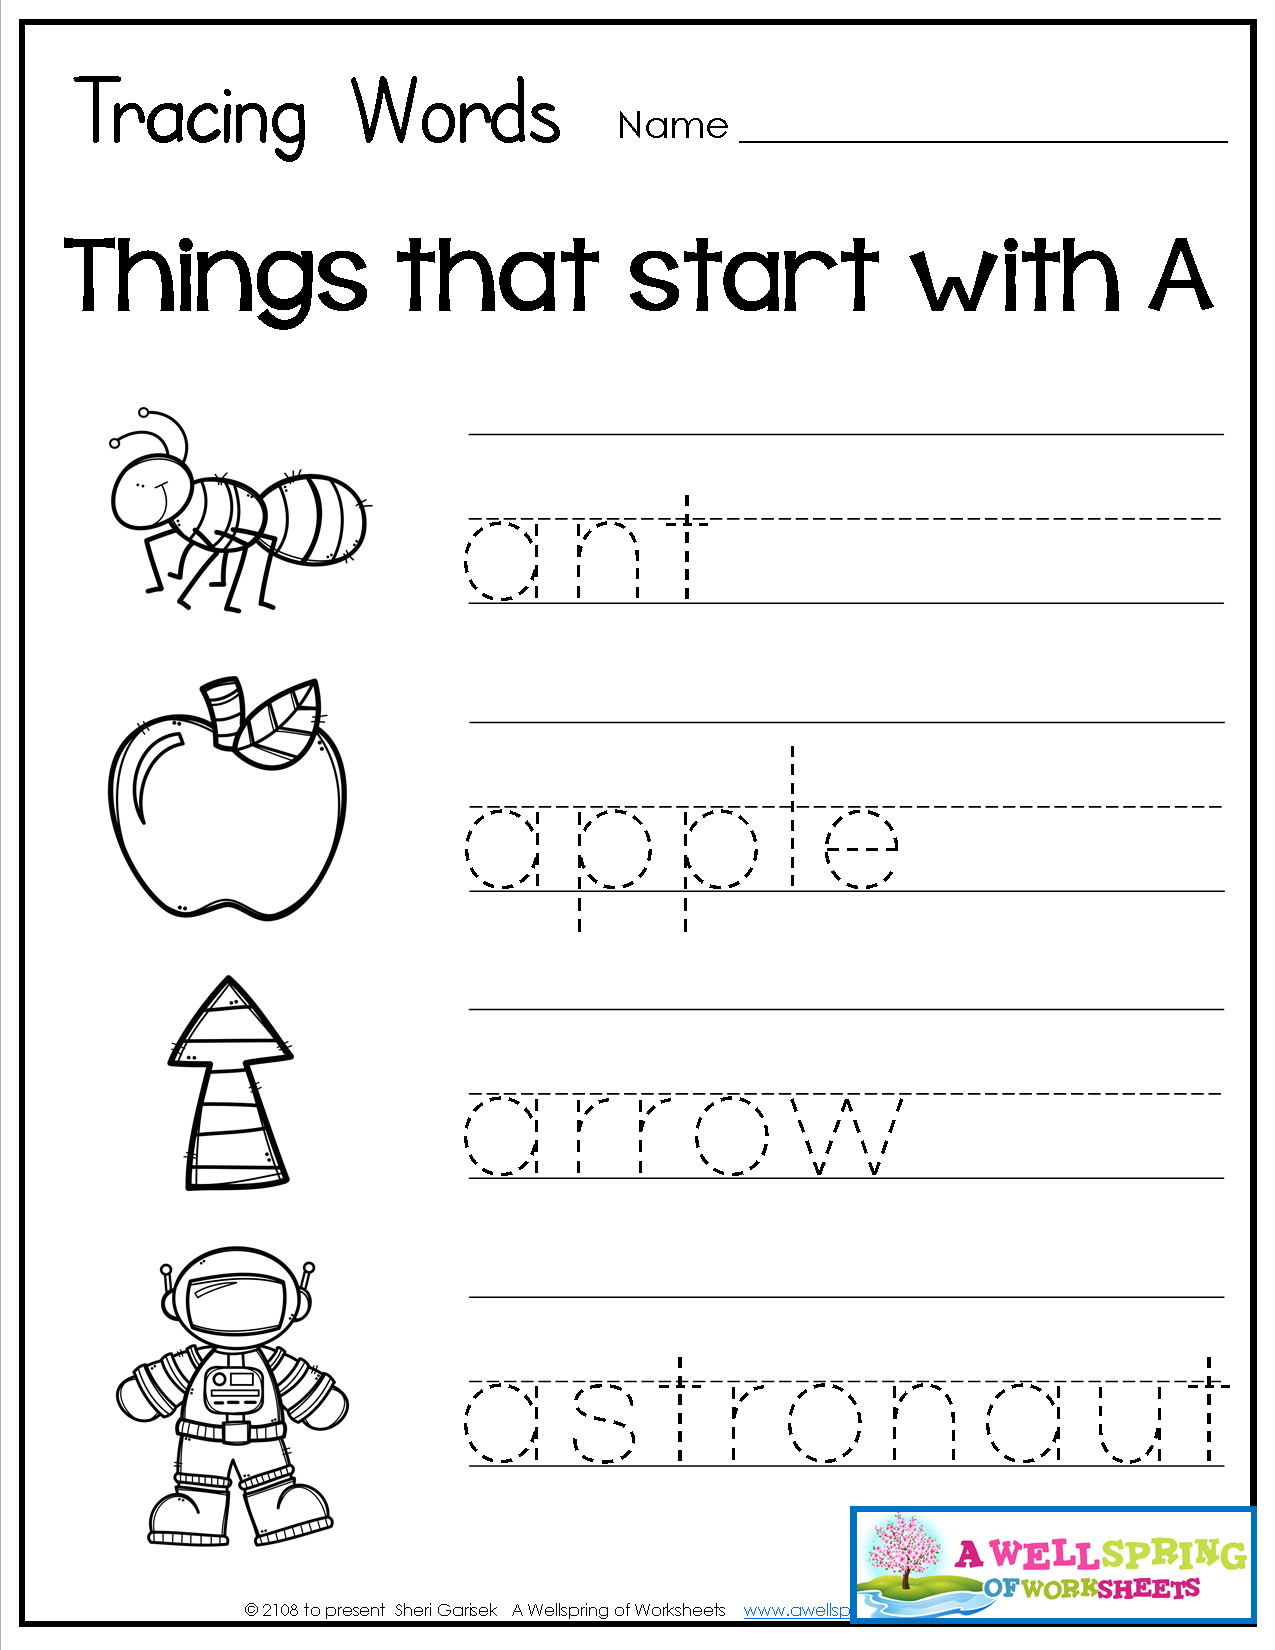 Tracing Words - Things That Start With A-Z | Alphabet intended for Name Tracing Beginner